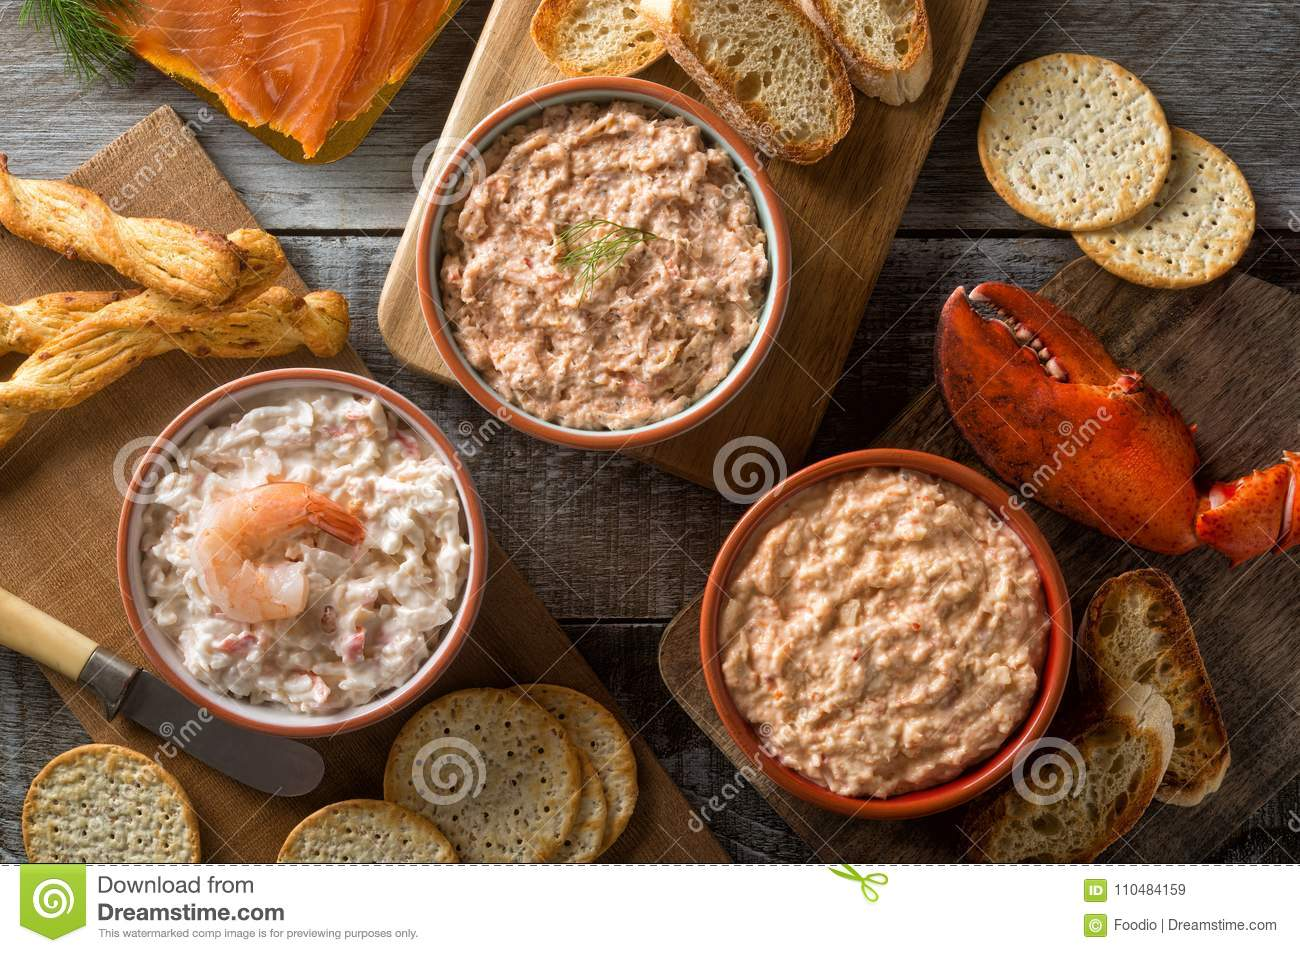 Assorted Seafood Spreads and Dips